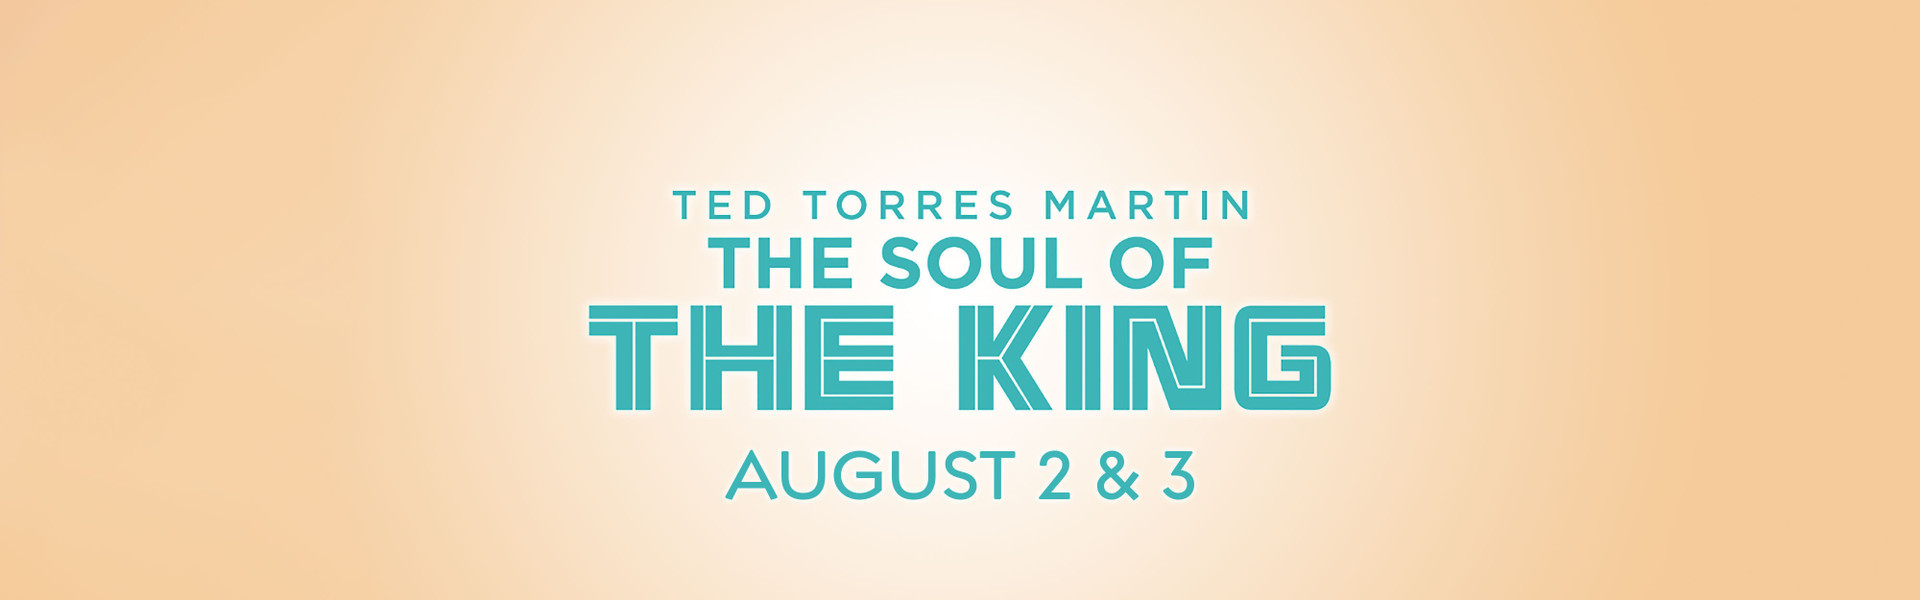 See Ted Torres Martin, Internationally-Renowned Elvis Artist on August 2 & 3, 2019 as he returns to Westgate Las Vegas Resort & Casino.with special guests The Sweet Inspirations.